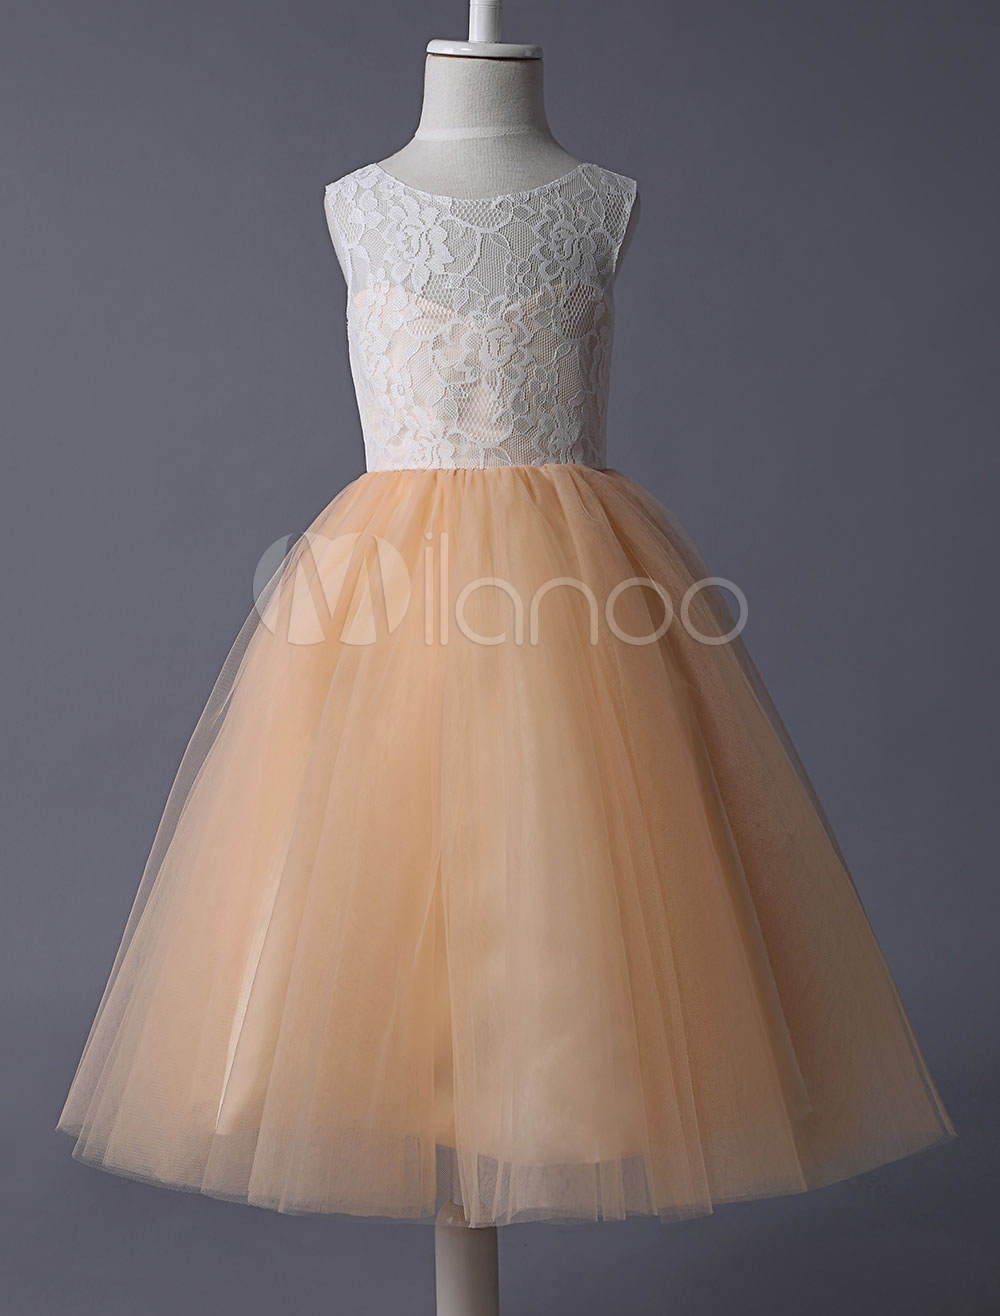 b749c6d16ee Ivory Sheer Neckline Lace Top With Champagne Tulle Skirt Flower Girl Dress  - Milanoo.com